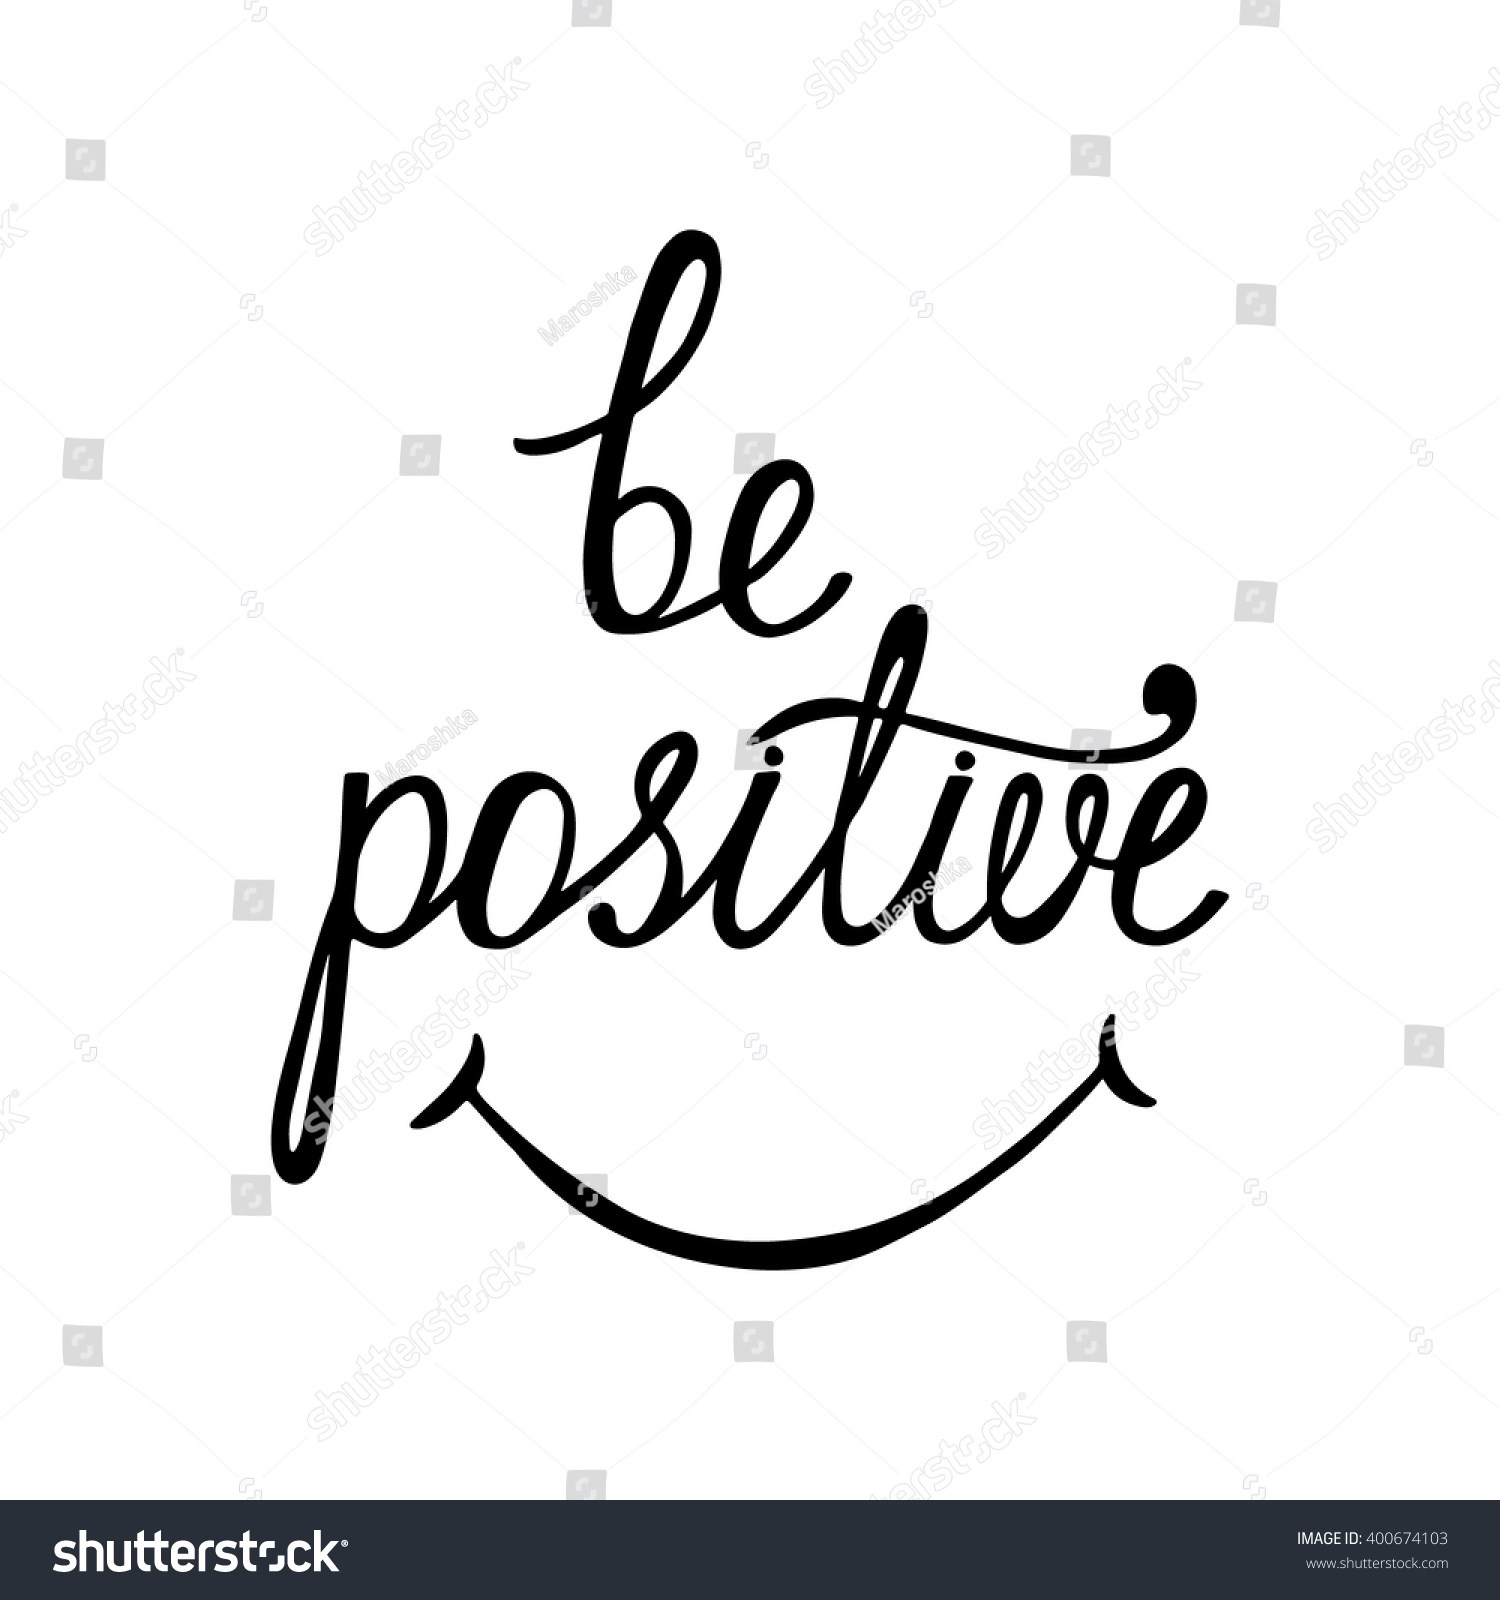 Be positive inspirational quote about happy stock vector Images of calligraphy